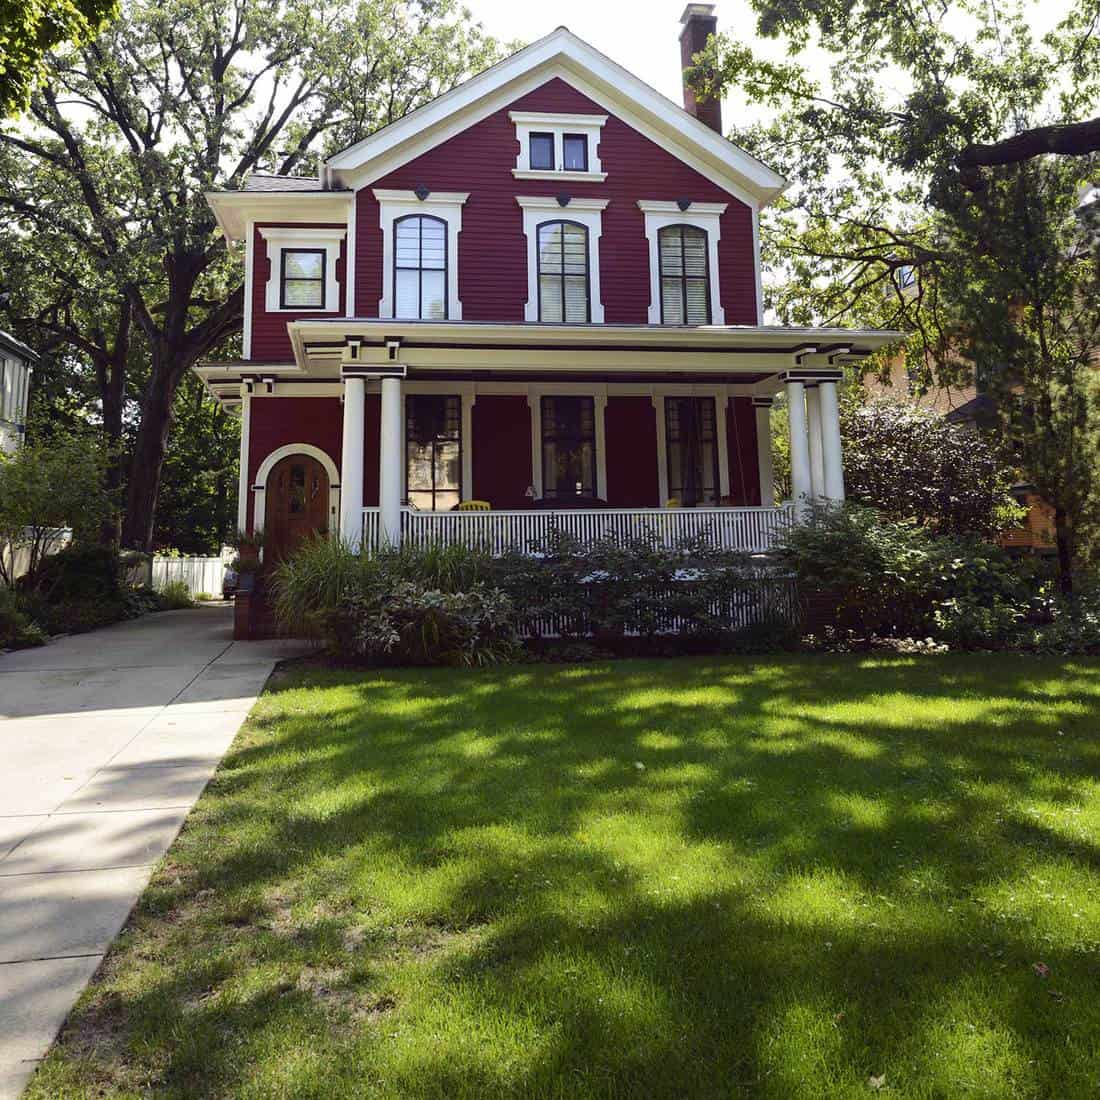 Modern maroon house with front porch and lawn